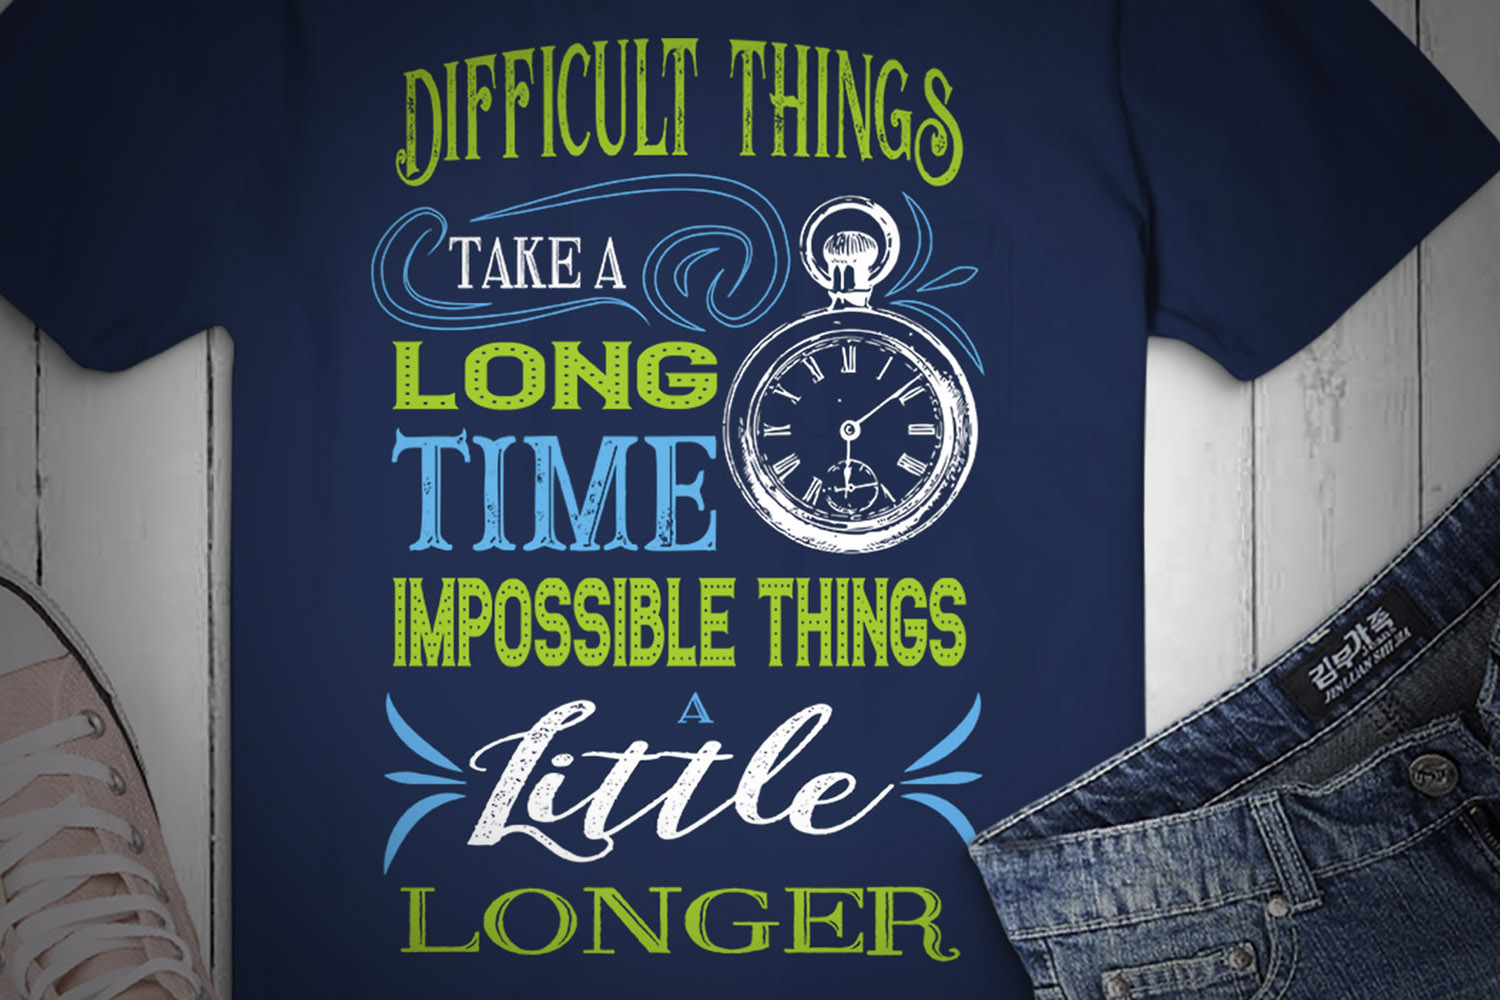 Difficult Things Take a Long Time... SVG Design example image 2